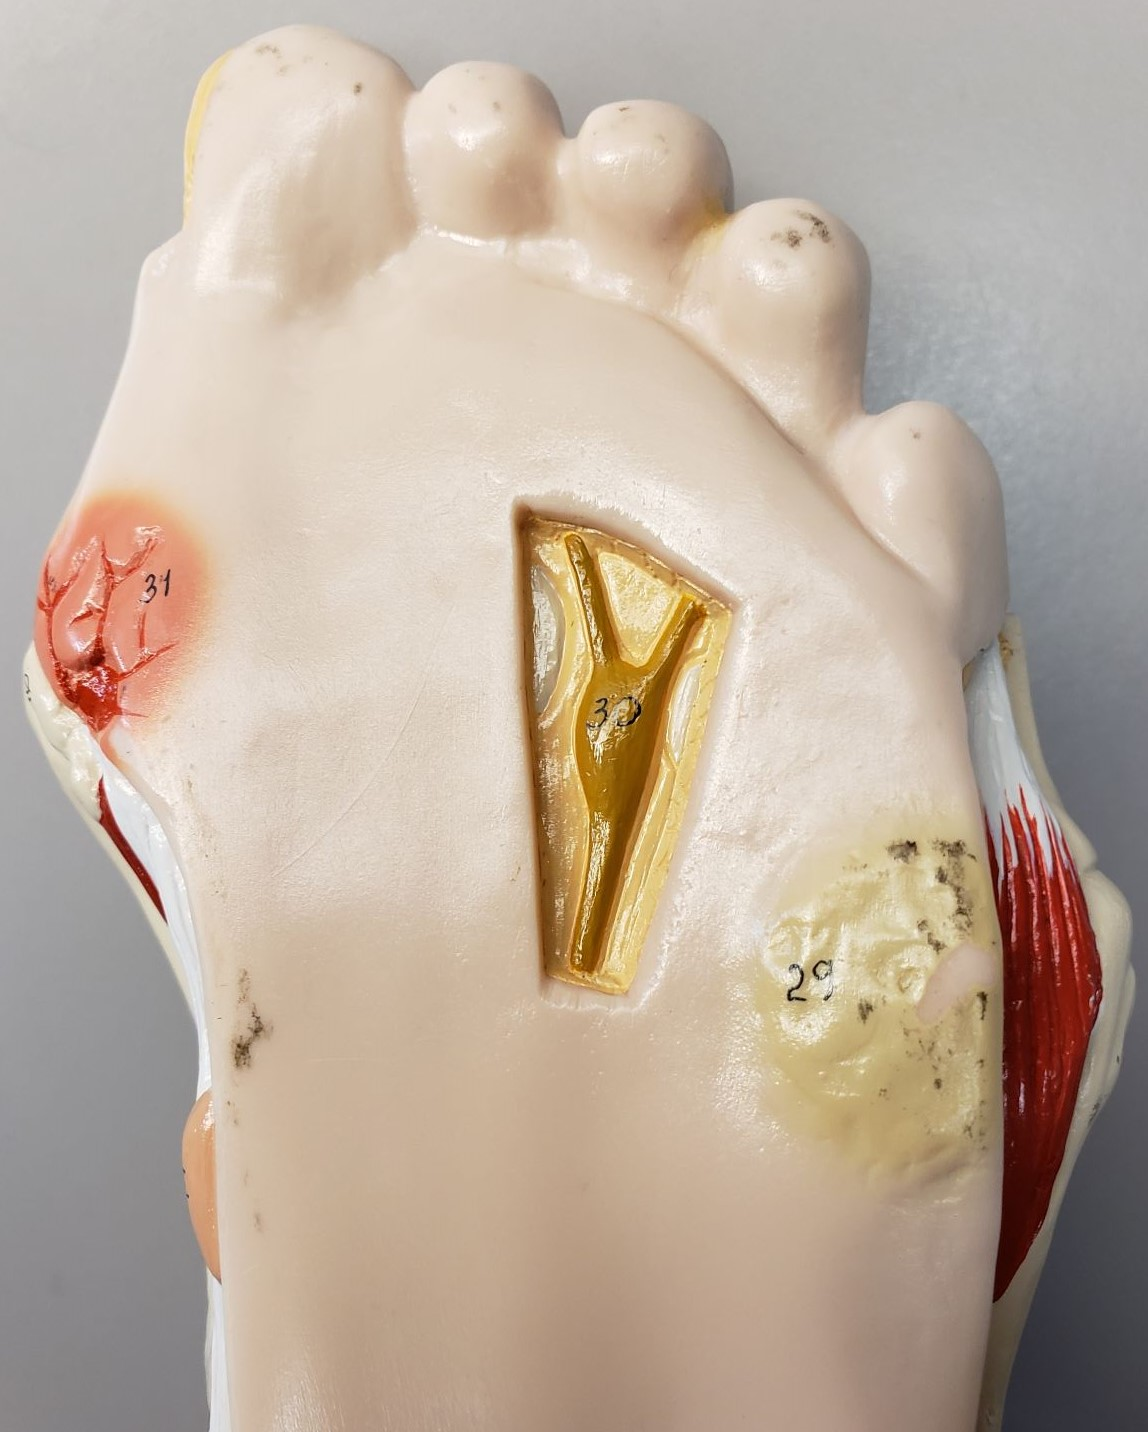 Diabetic foot model showing full-thickness ulceration on far left side of picture, and pre-ulcerative lesion on far right.